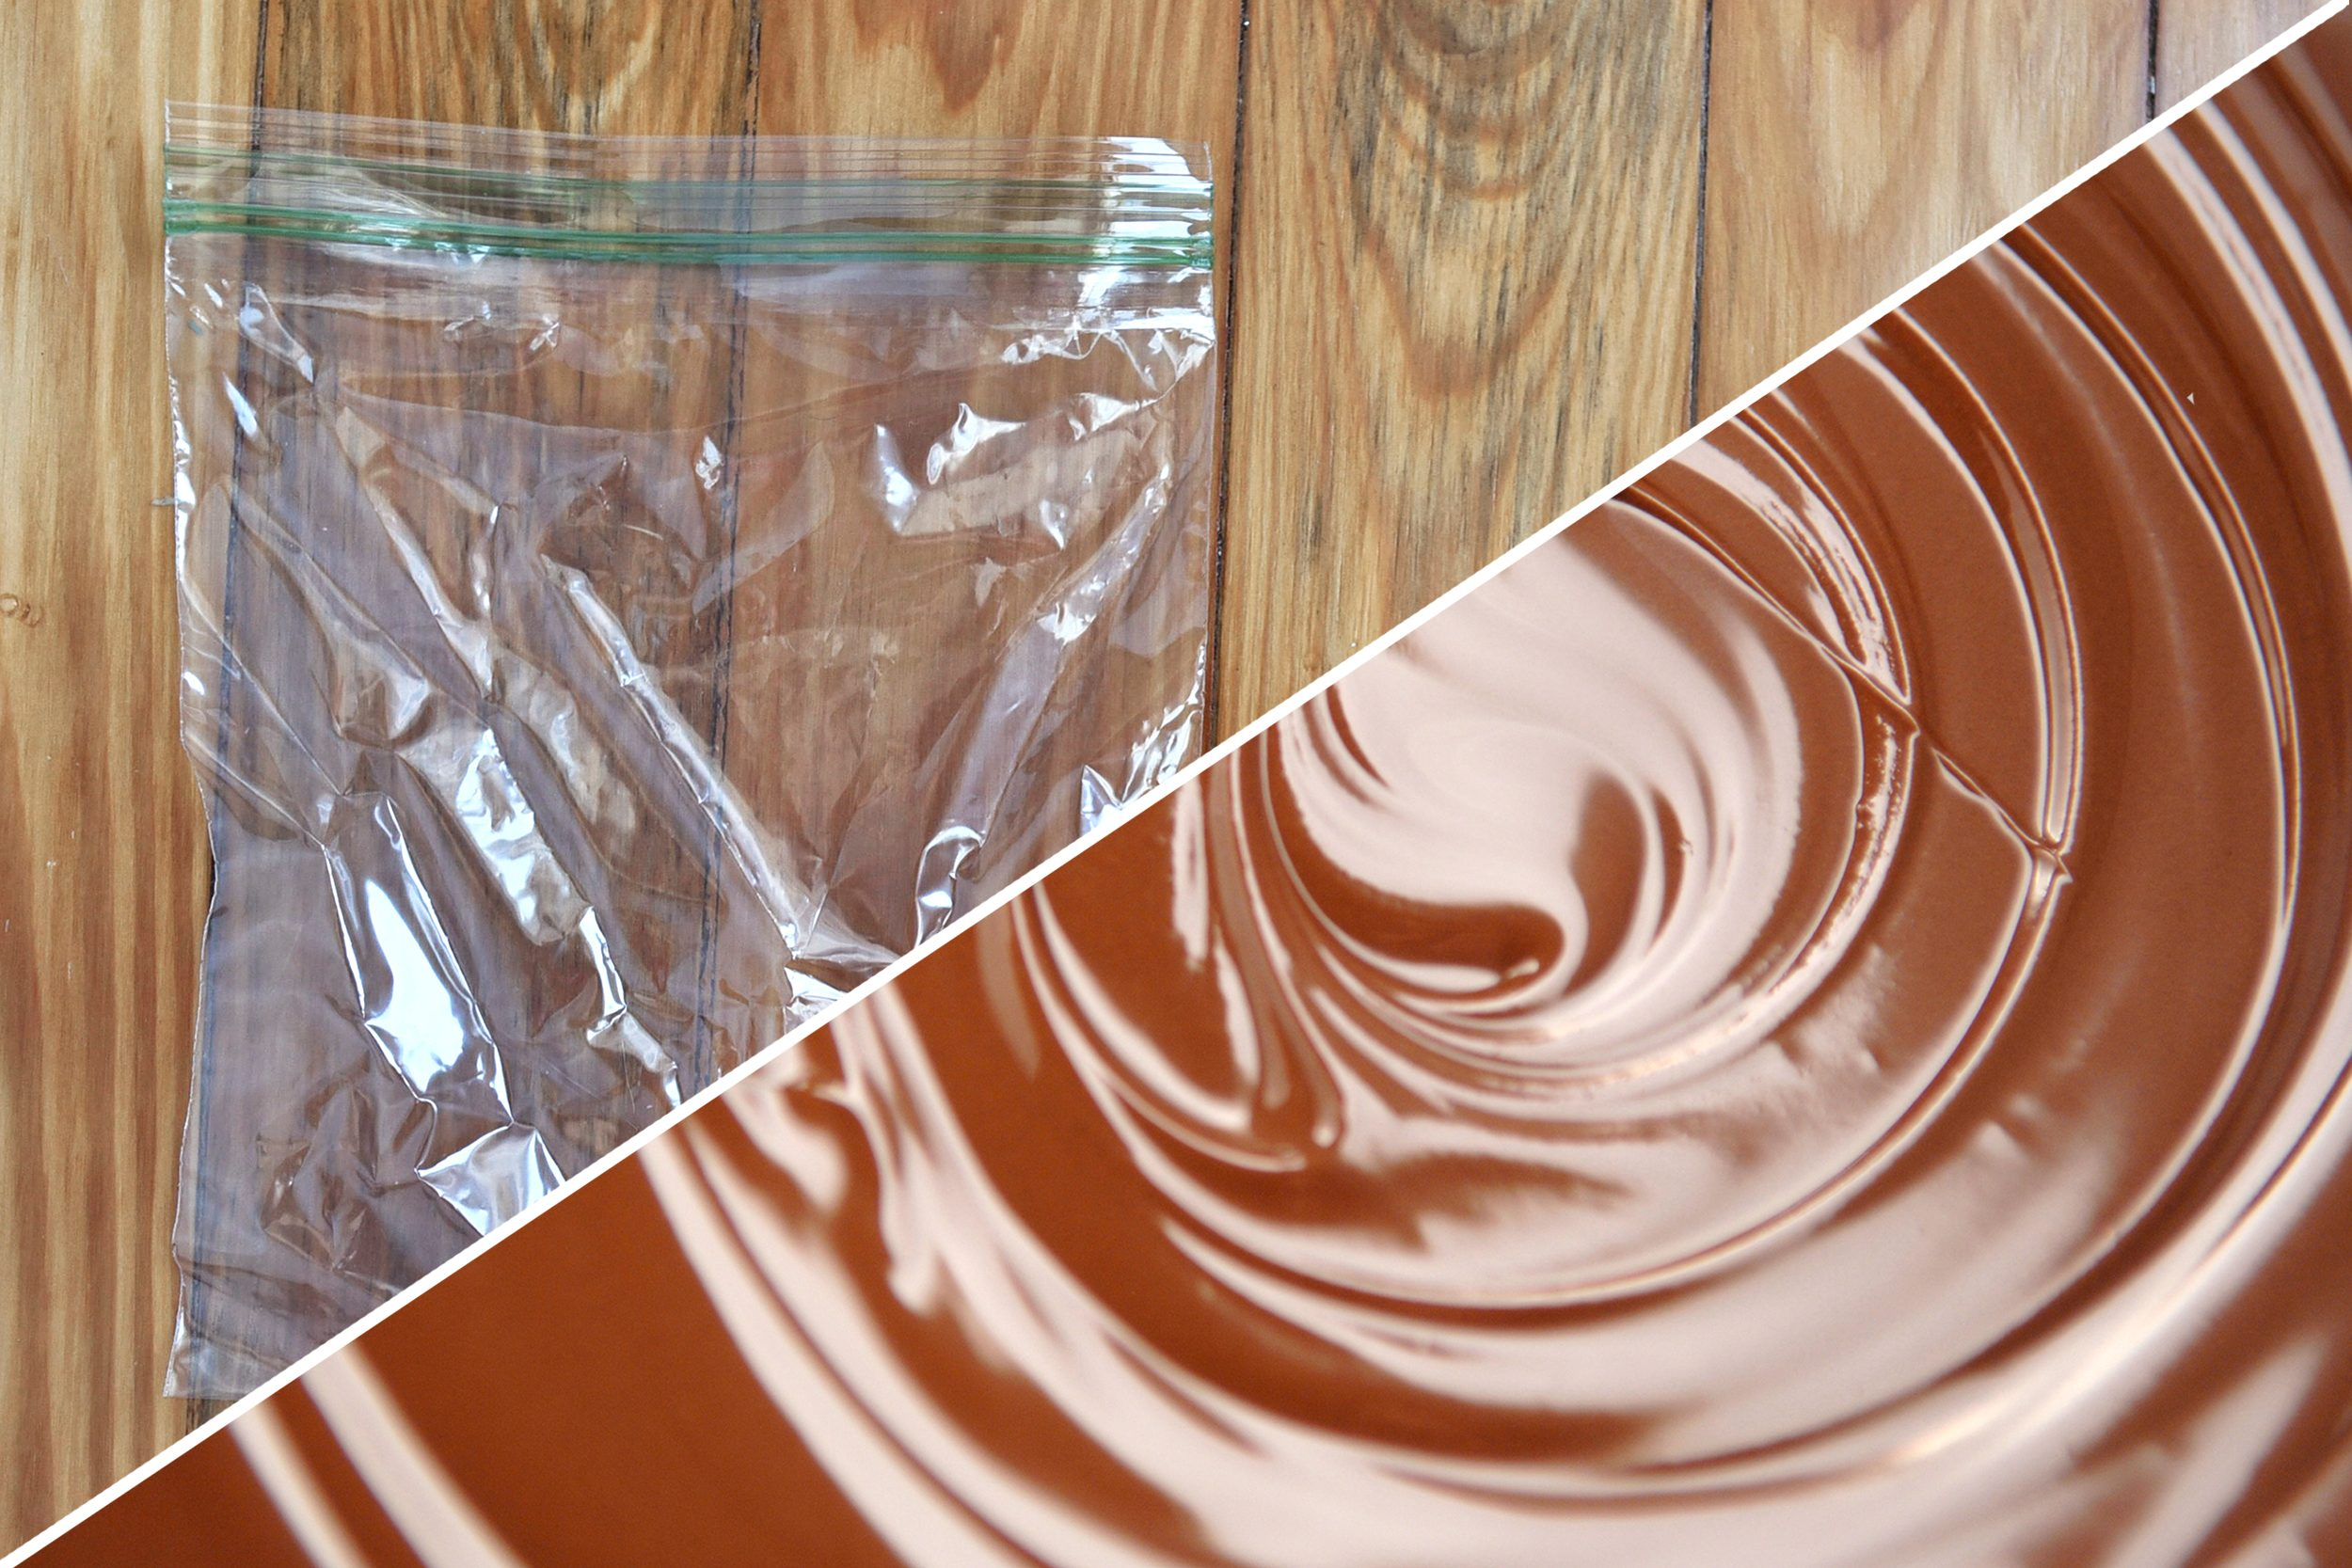 melted chocolate plastic bag uses life hacks